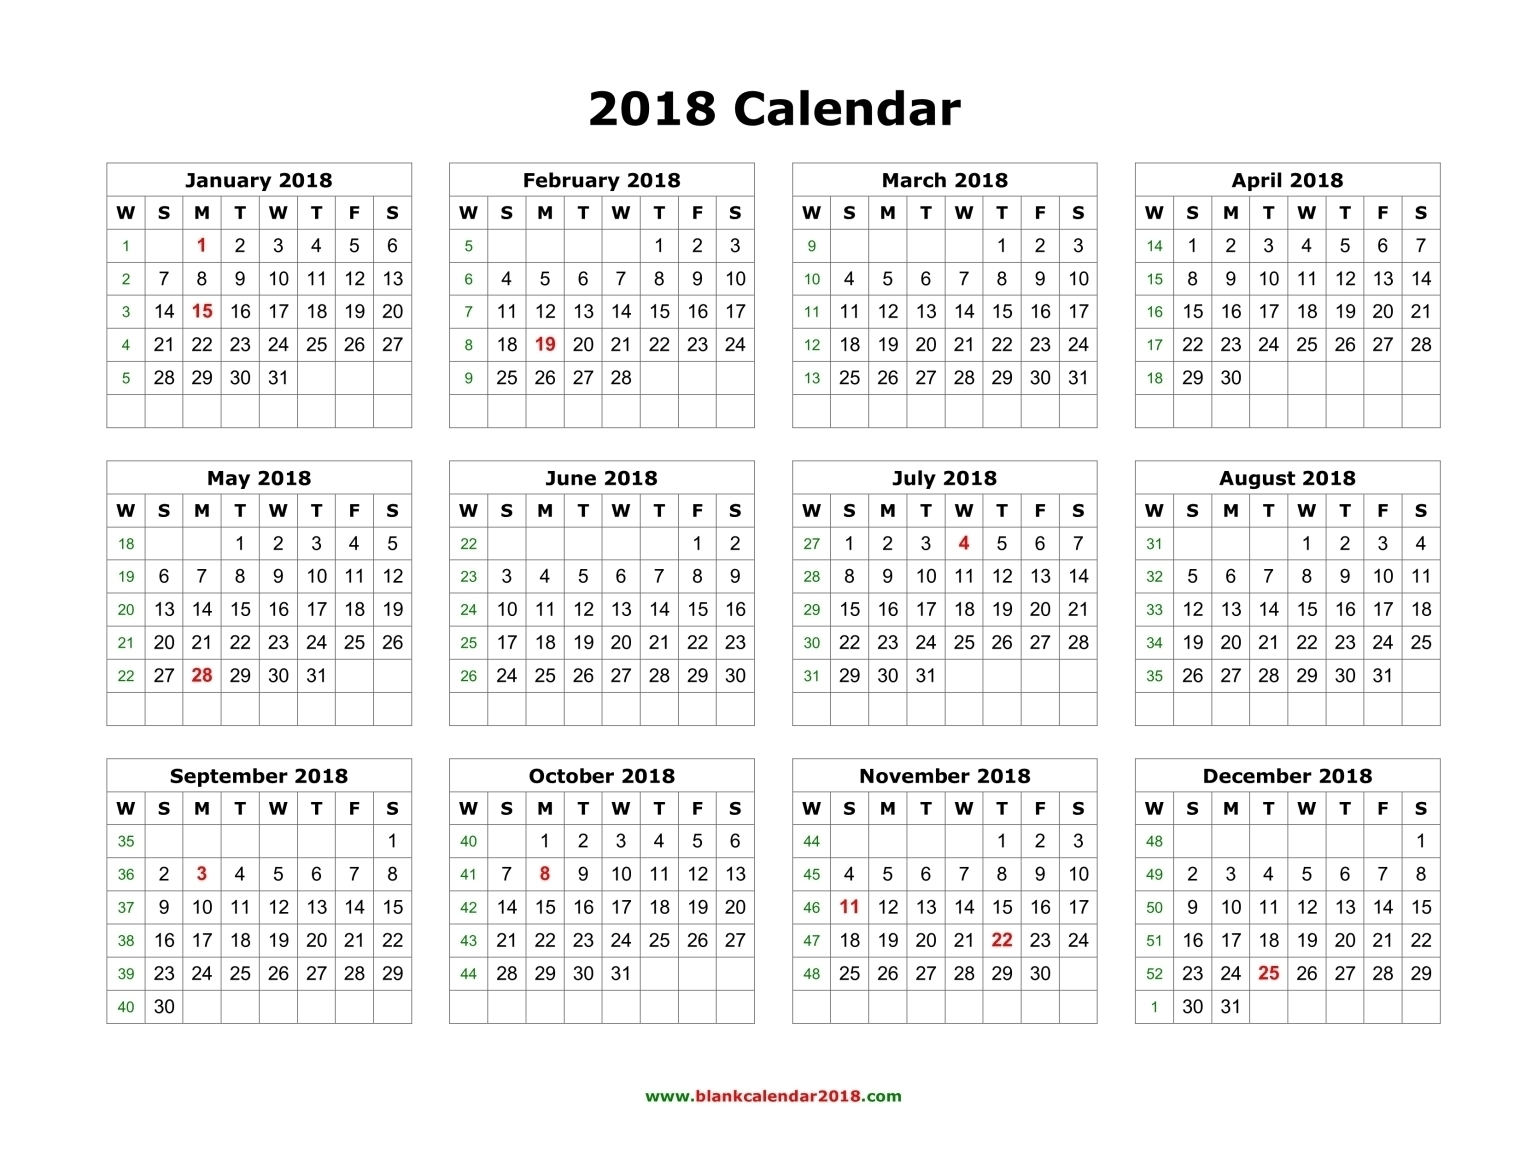 Blank Calendar 2018 in 12 Month Calendar Print Out